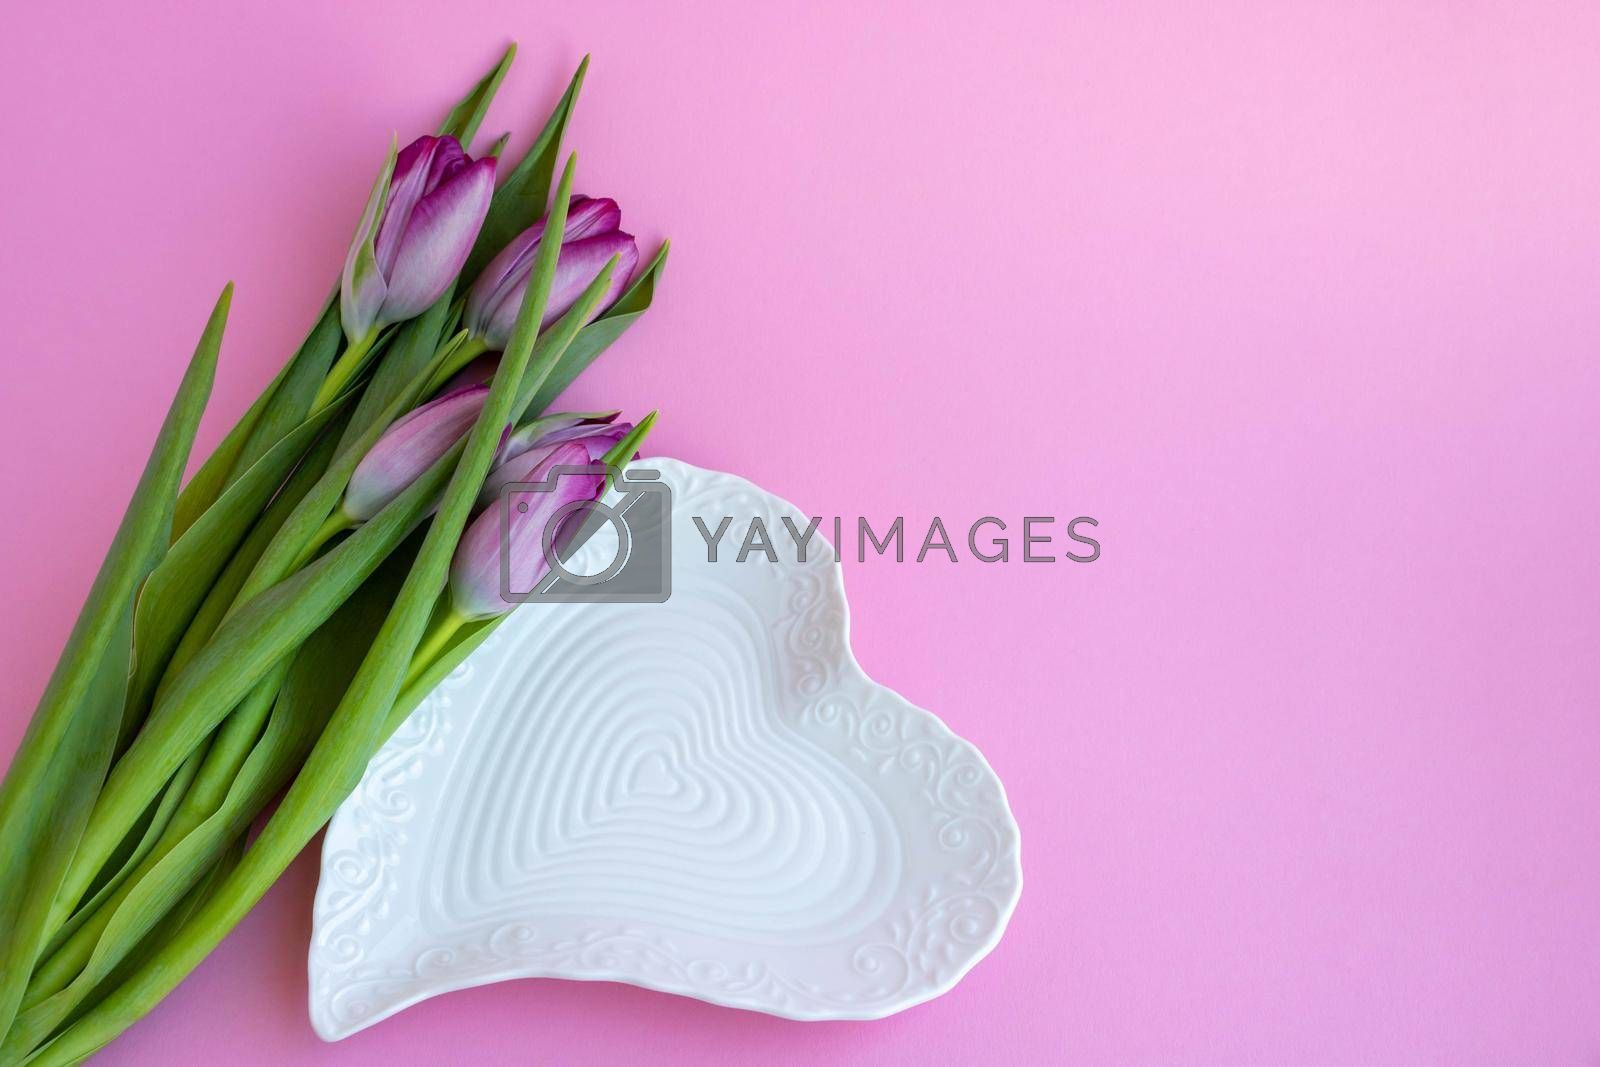 Delicate lilac tulips and a white heart-shaped plate on a pink background. Greeting card, wallpaper, background. Happy Mother's Day, Easter, Valentine's Day, or wedding.